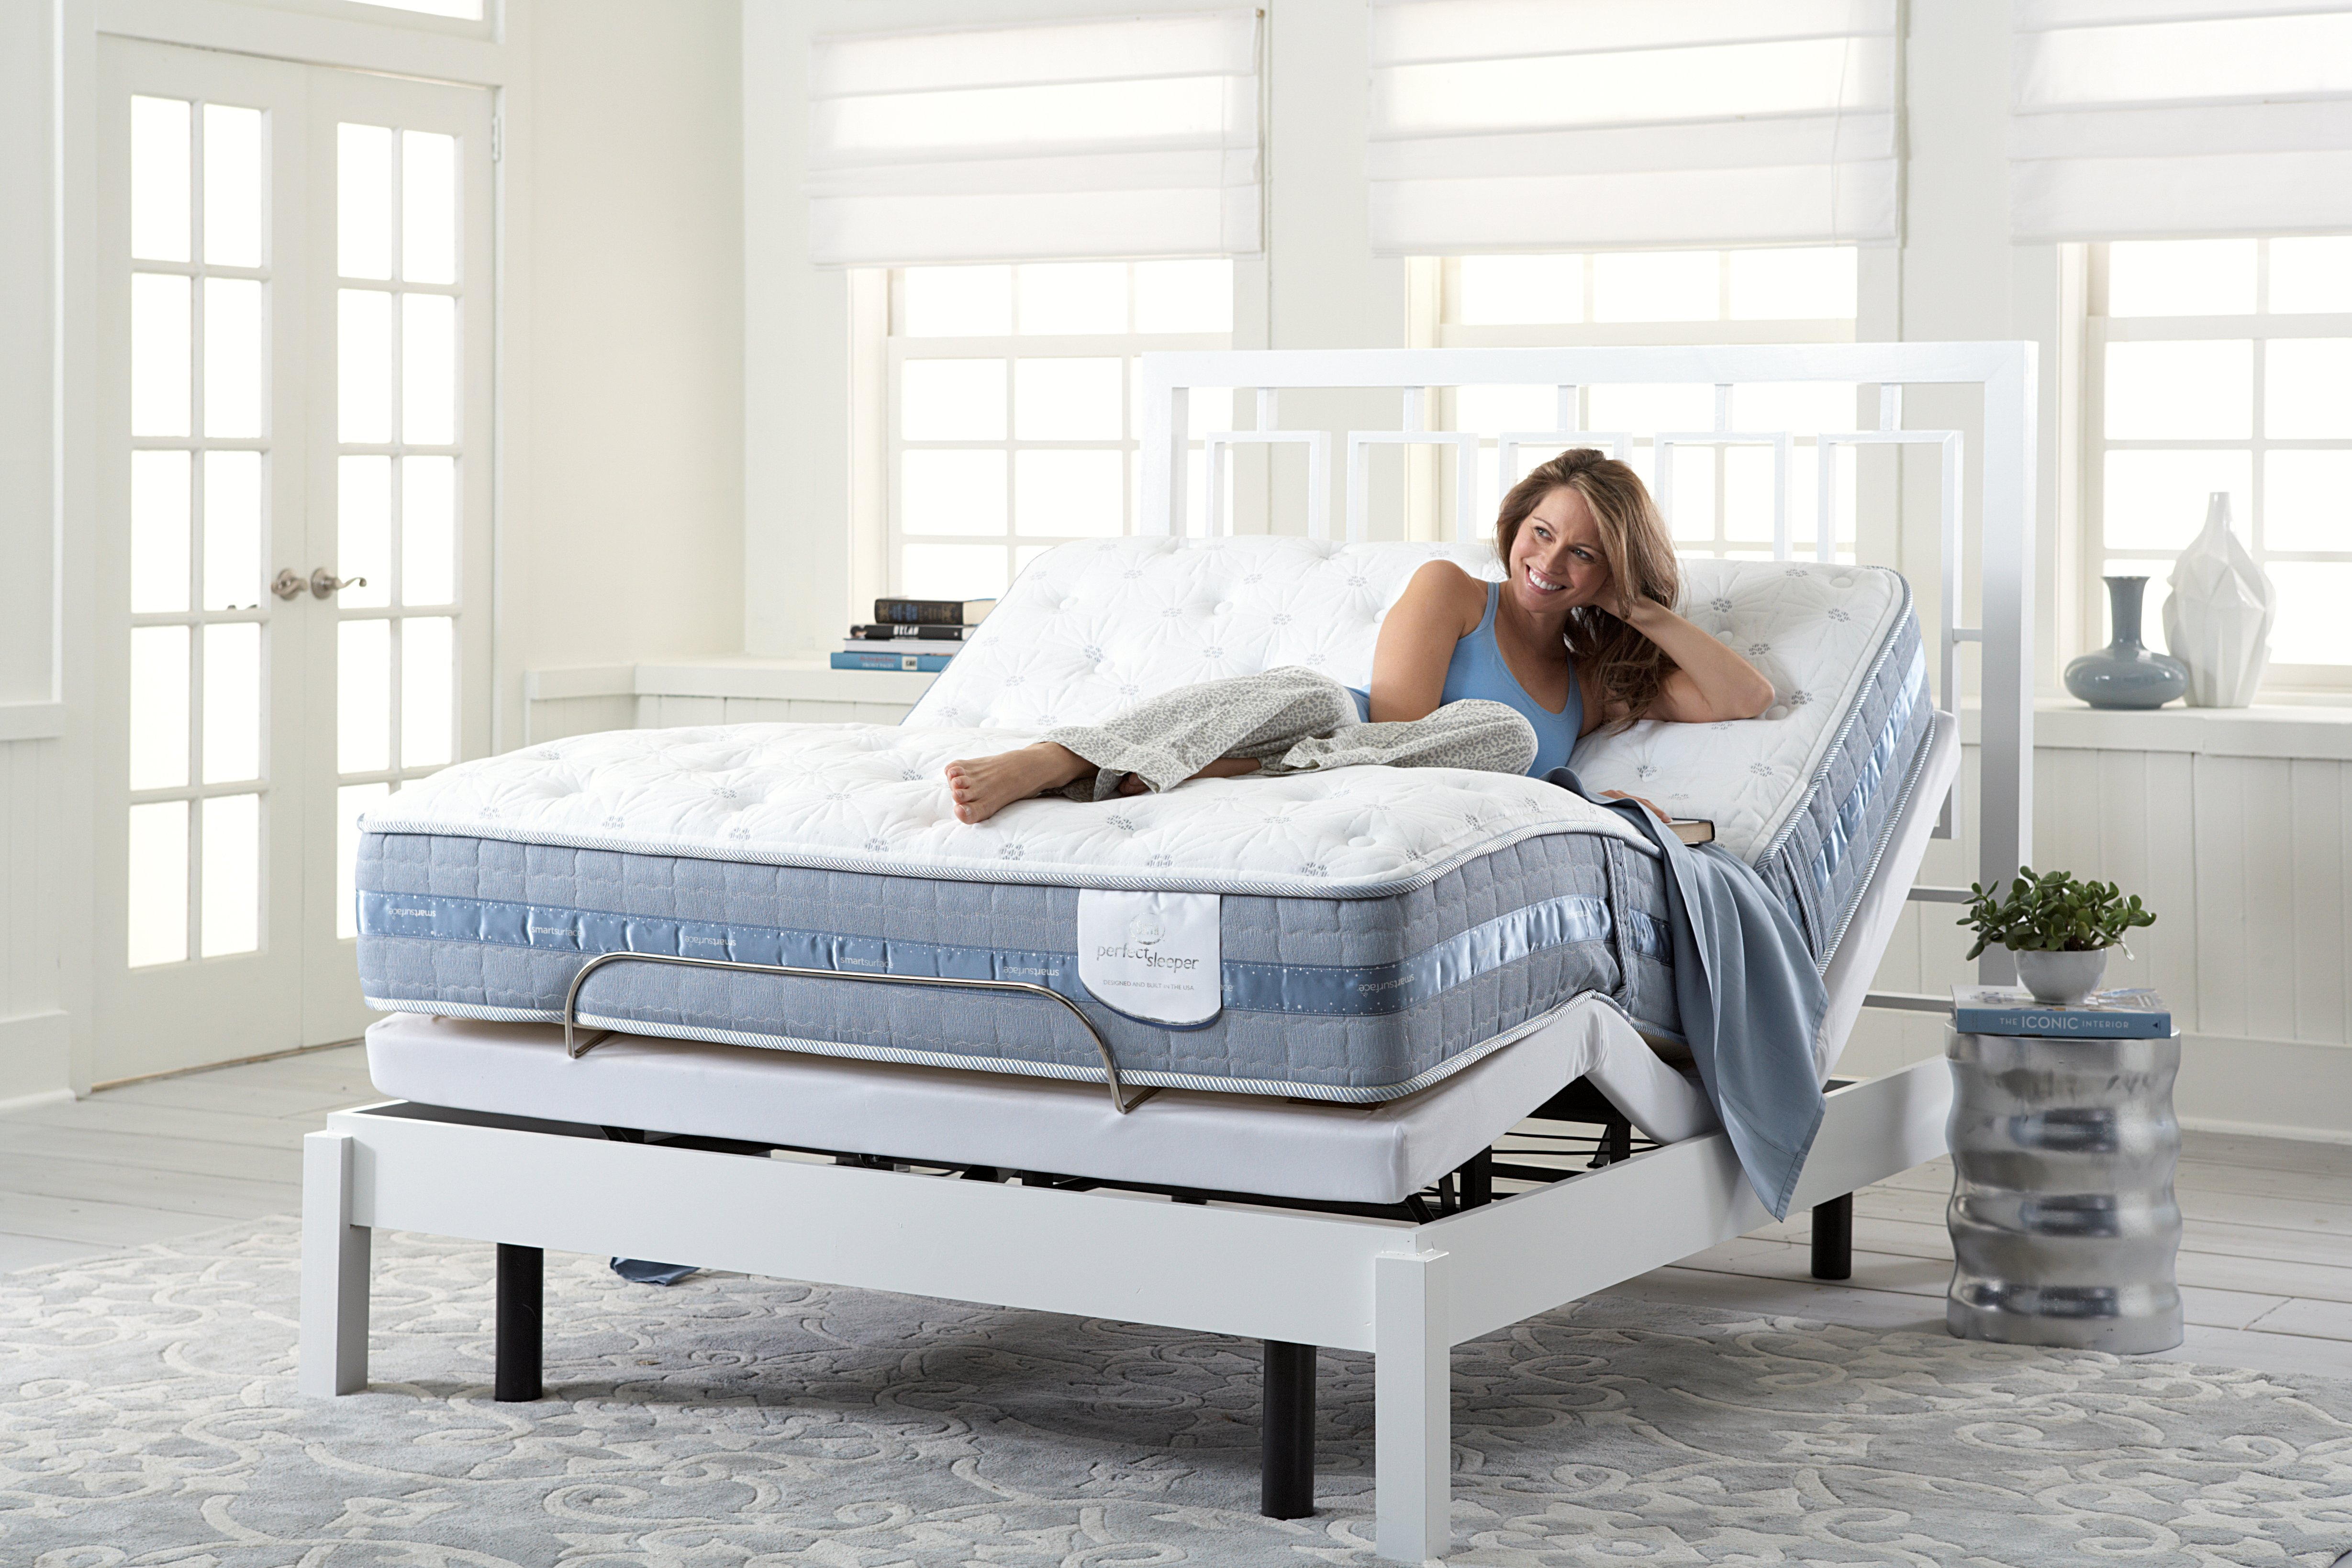 Serta Perfect Sleeper adjustable base